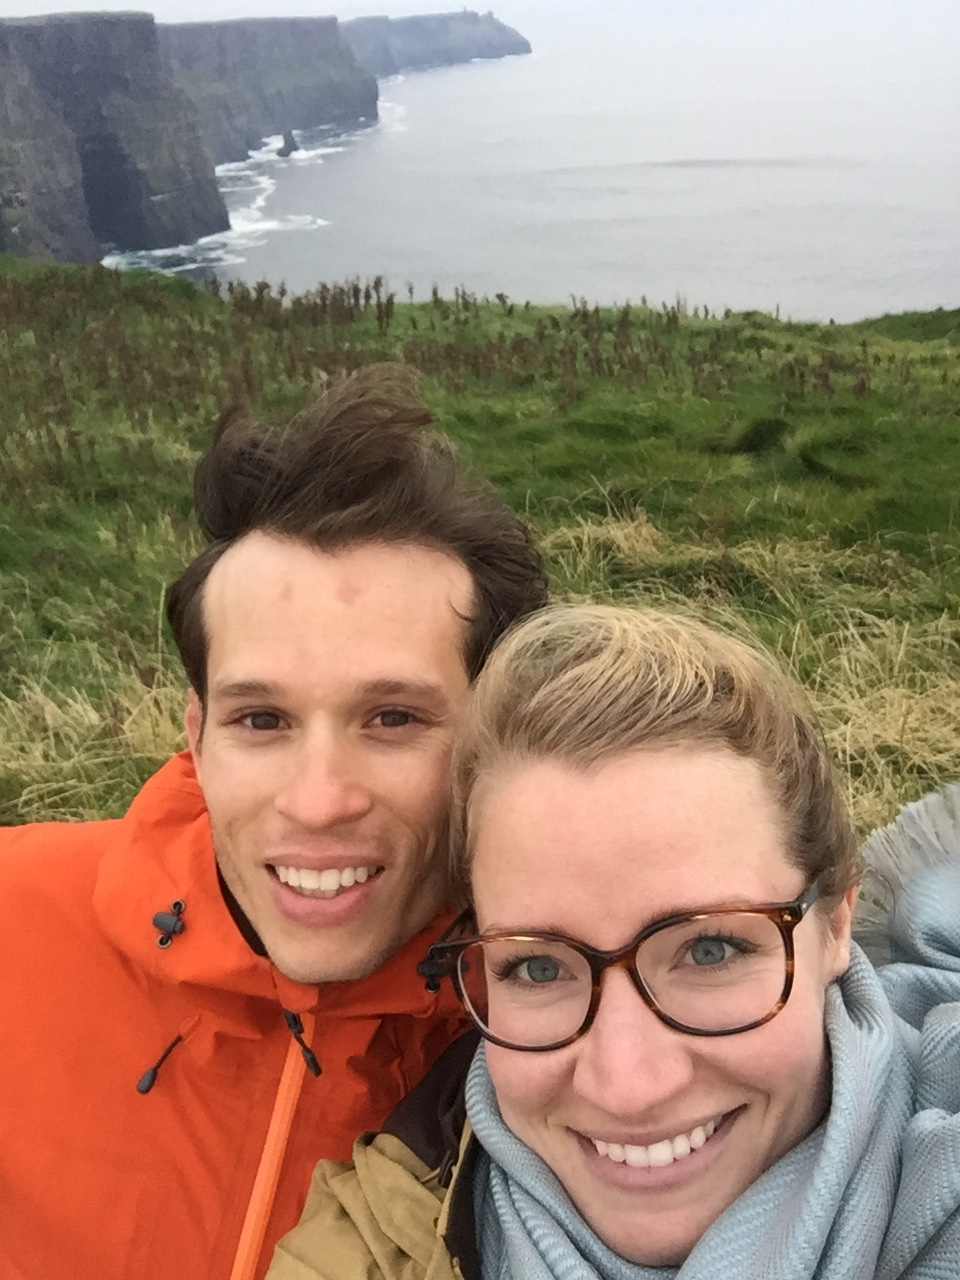 Us-at-Cliffs-of-Moher_heatherbyhand.JPG